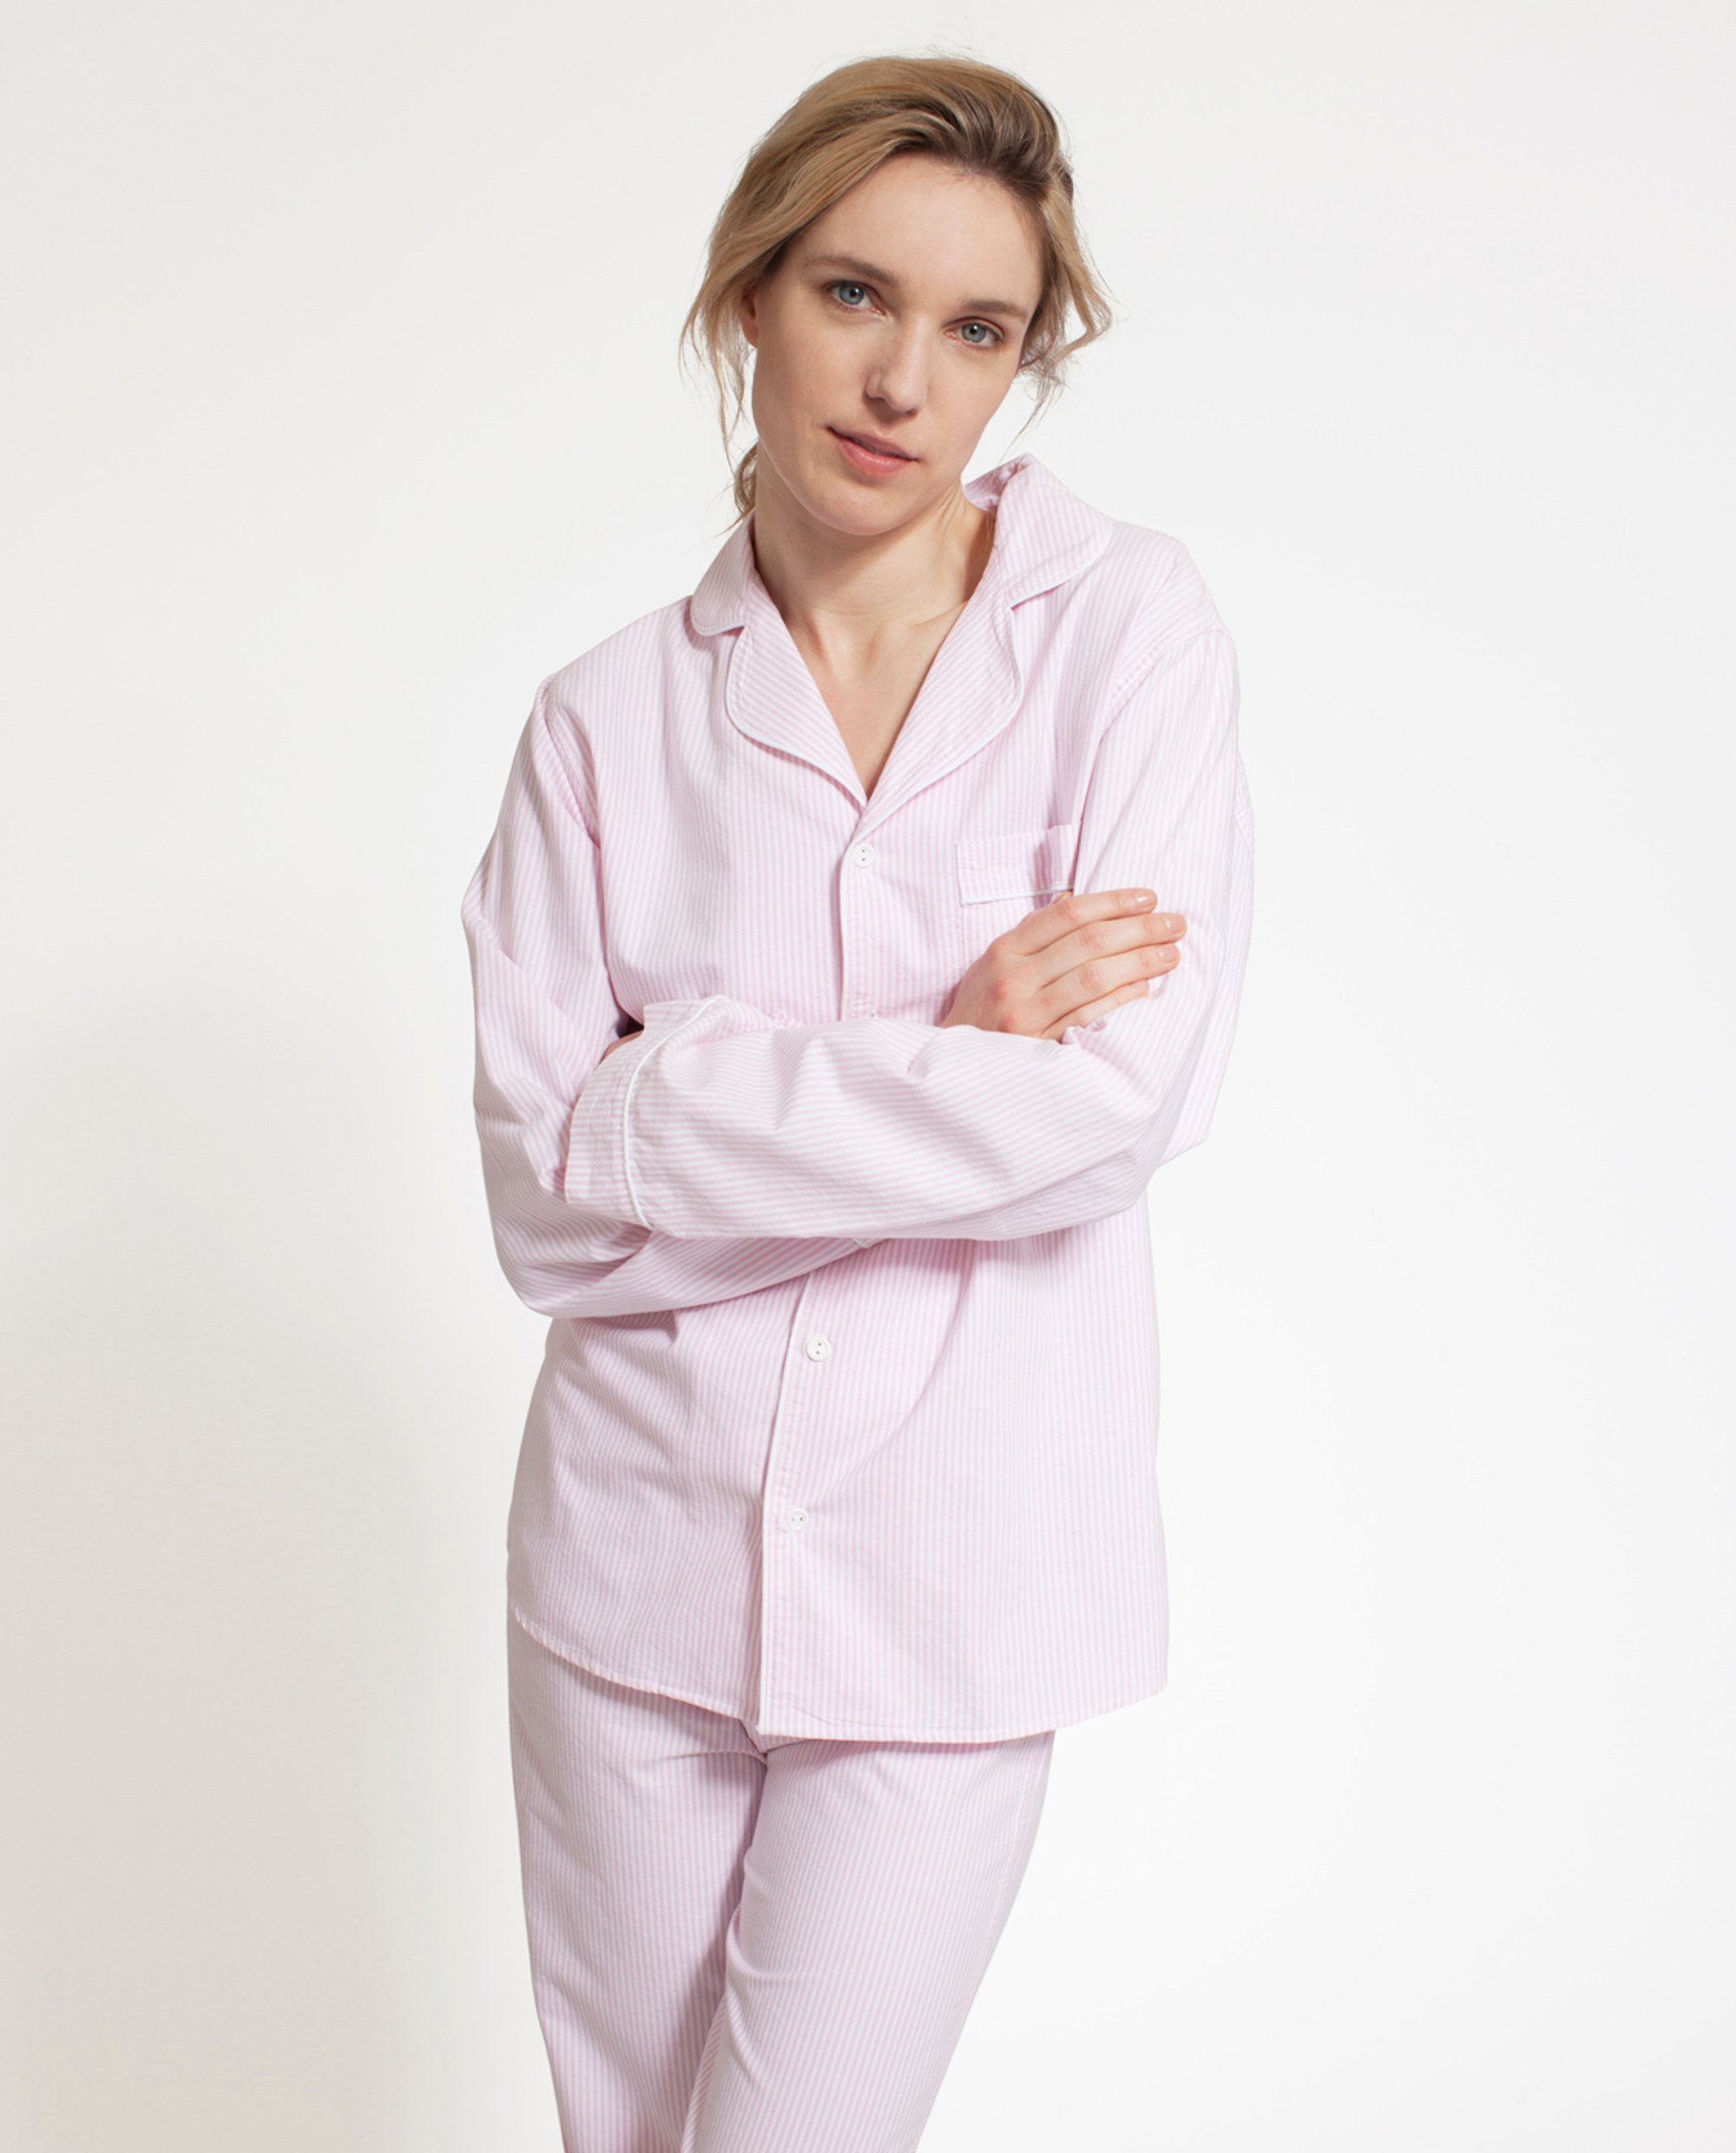 Icons Unisex American Authentic Pajamas Pink/White